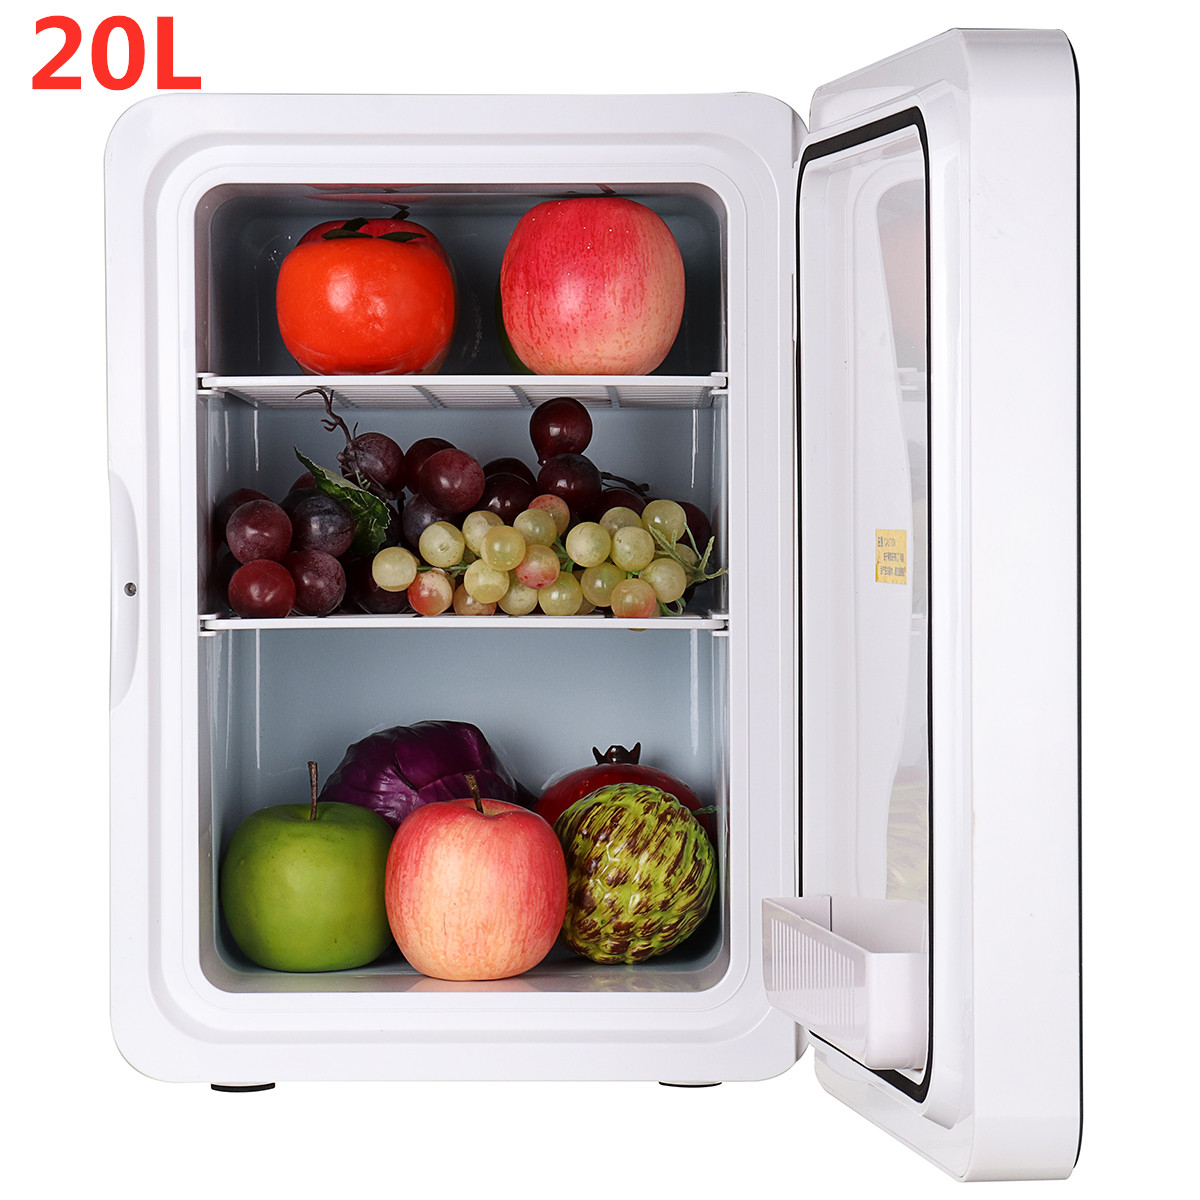 Portable 20L Refrigerator Dual-Use Fridge Refrigerators 12V 56W Ultra Quiet Cooling Heating Box Fridge For Car